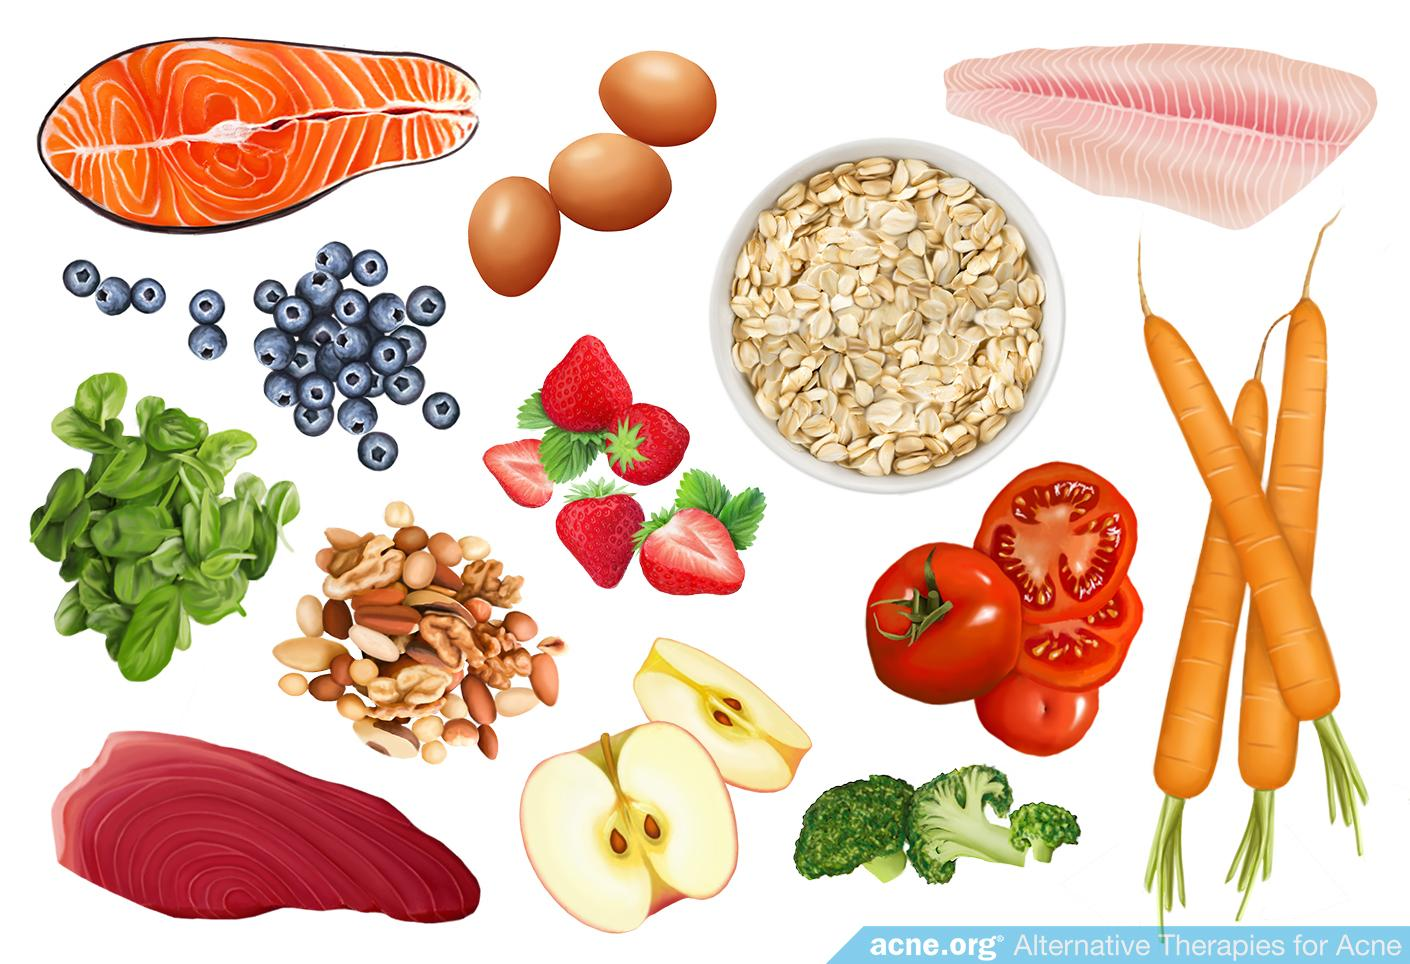 Alternative Therapies for Acne: Diet